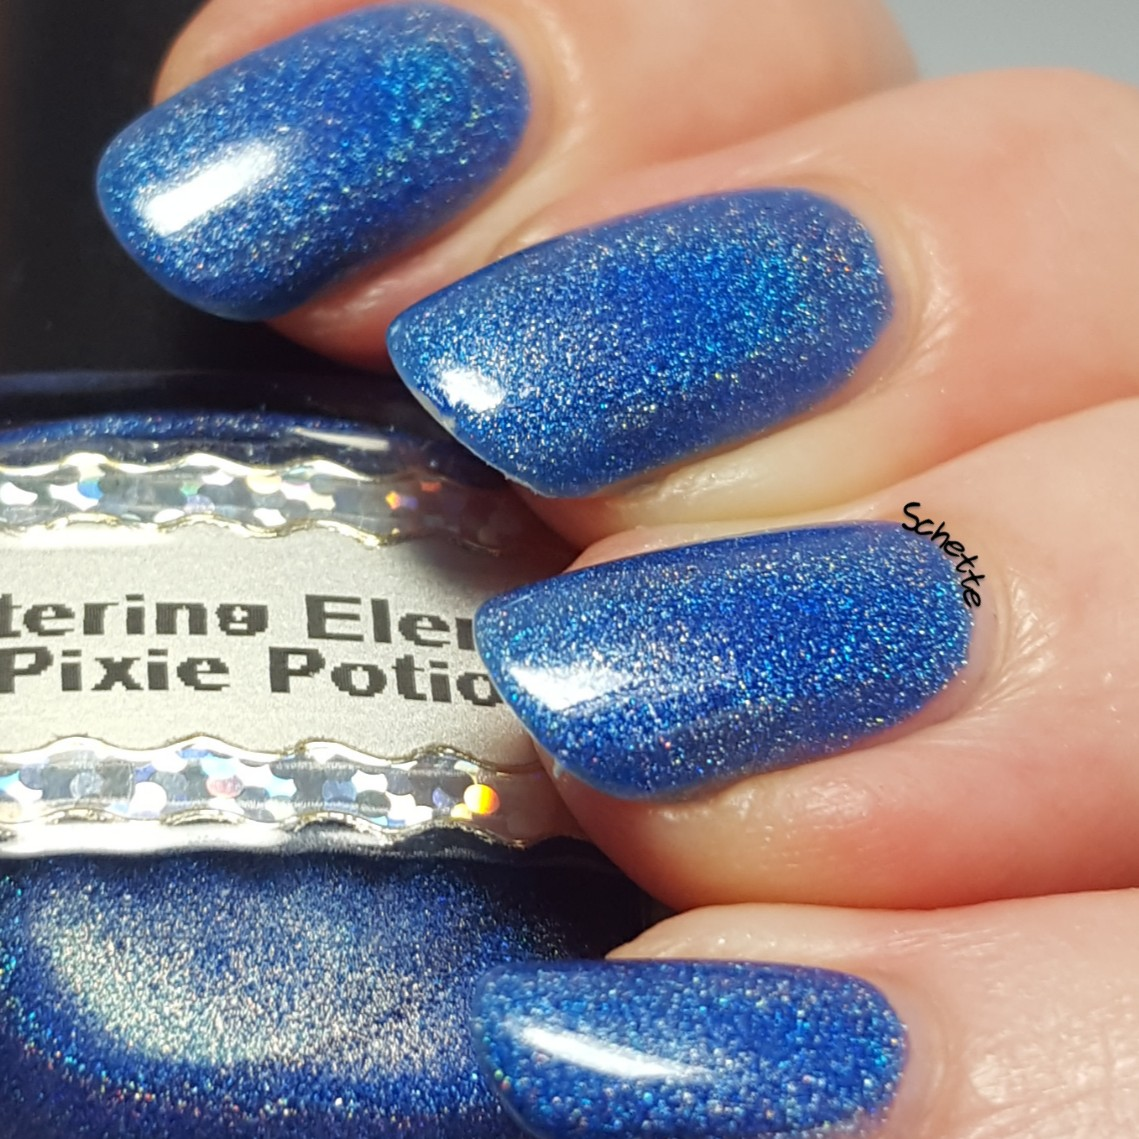 Glittering Elements - Pixie Potion